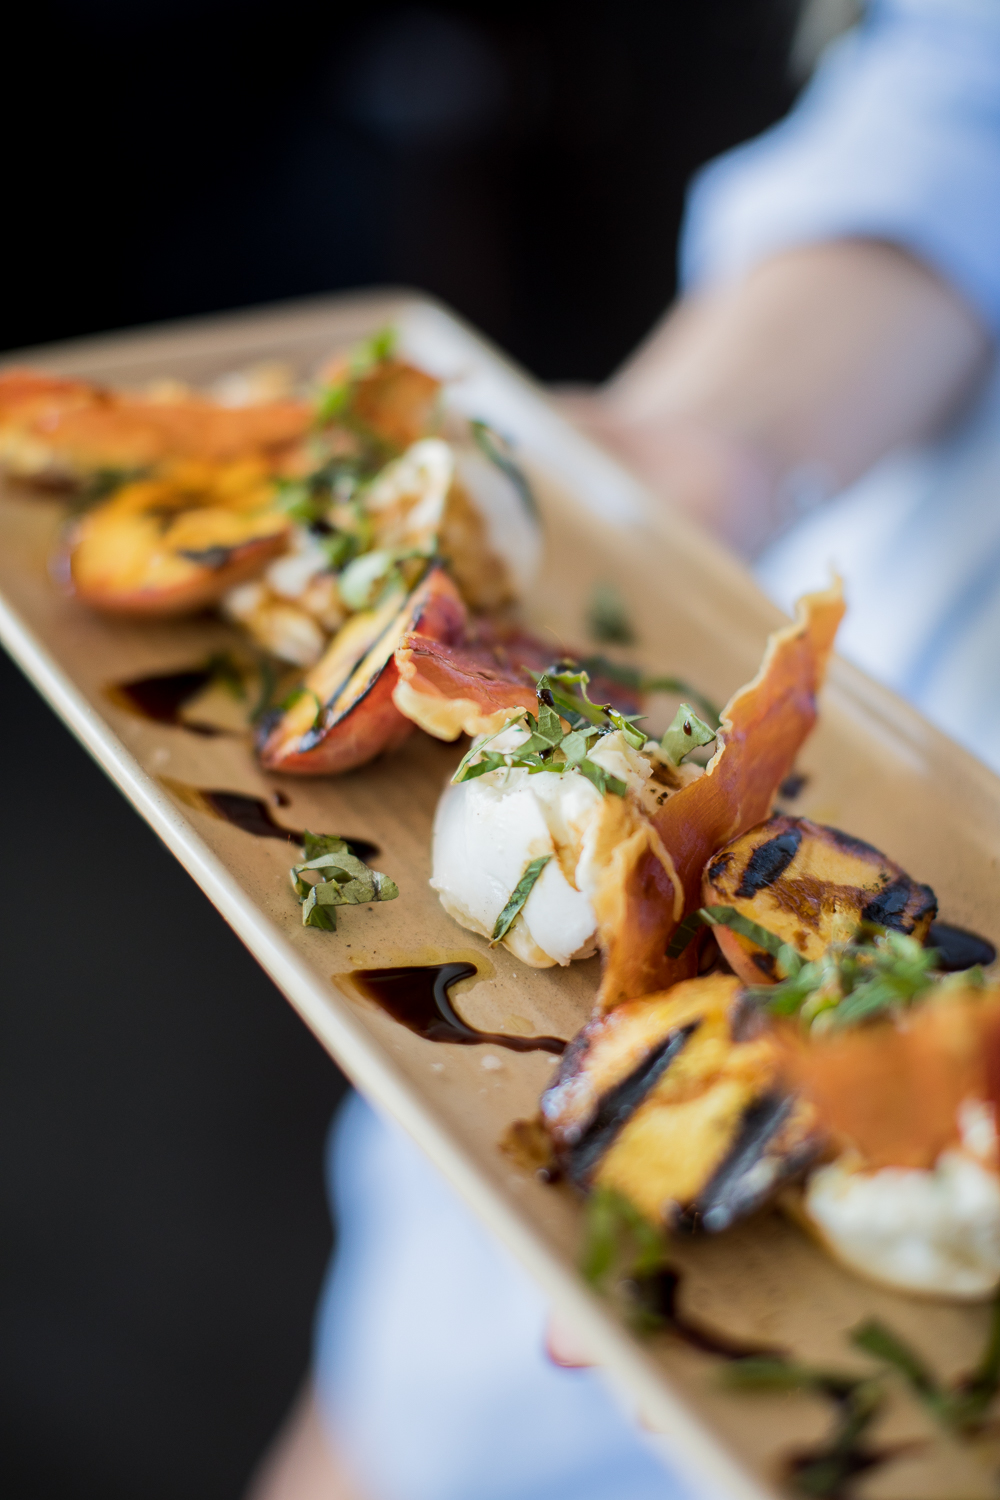 new season grilled peach - with buffalo mozzarella, prosciutto crisps, fresh basil & vino cotto